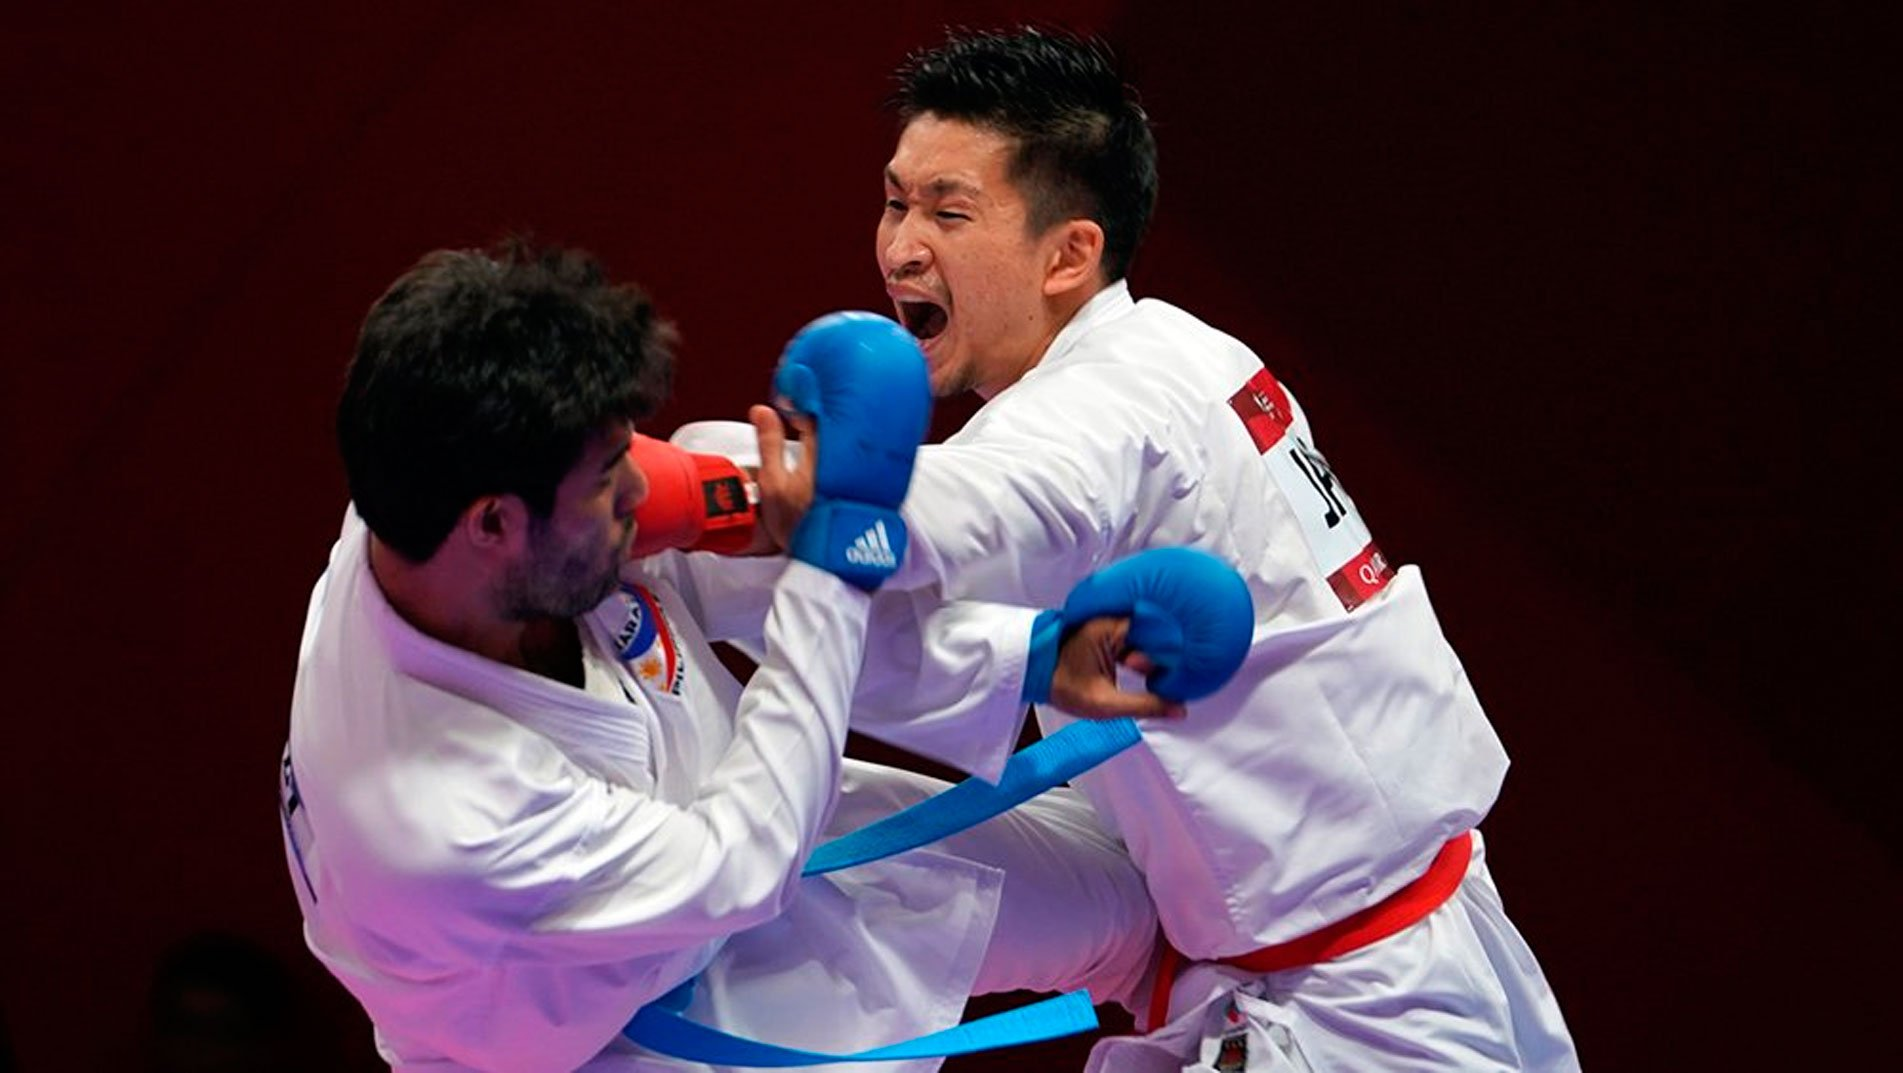 Ryutaro Araga prevails in final day of Karate action at Asian Games